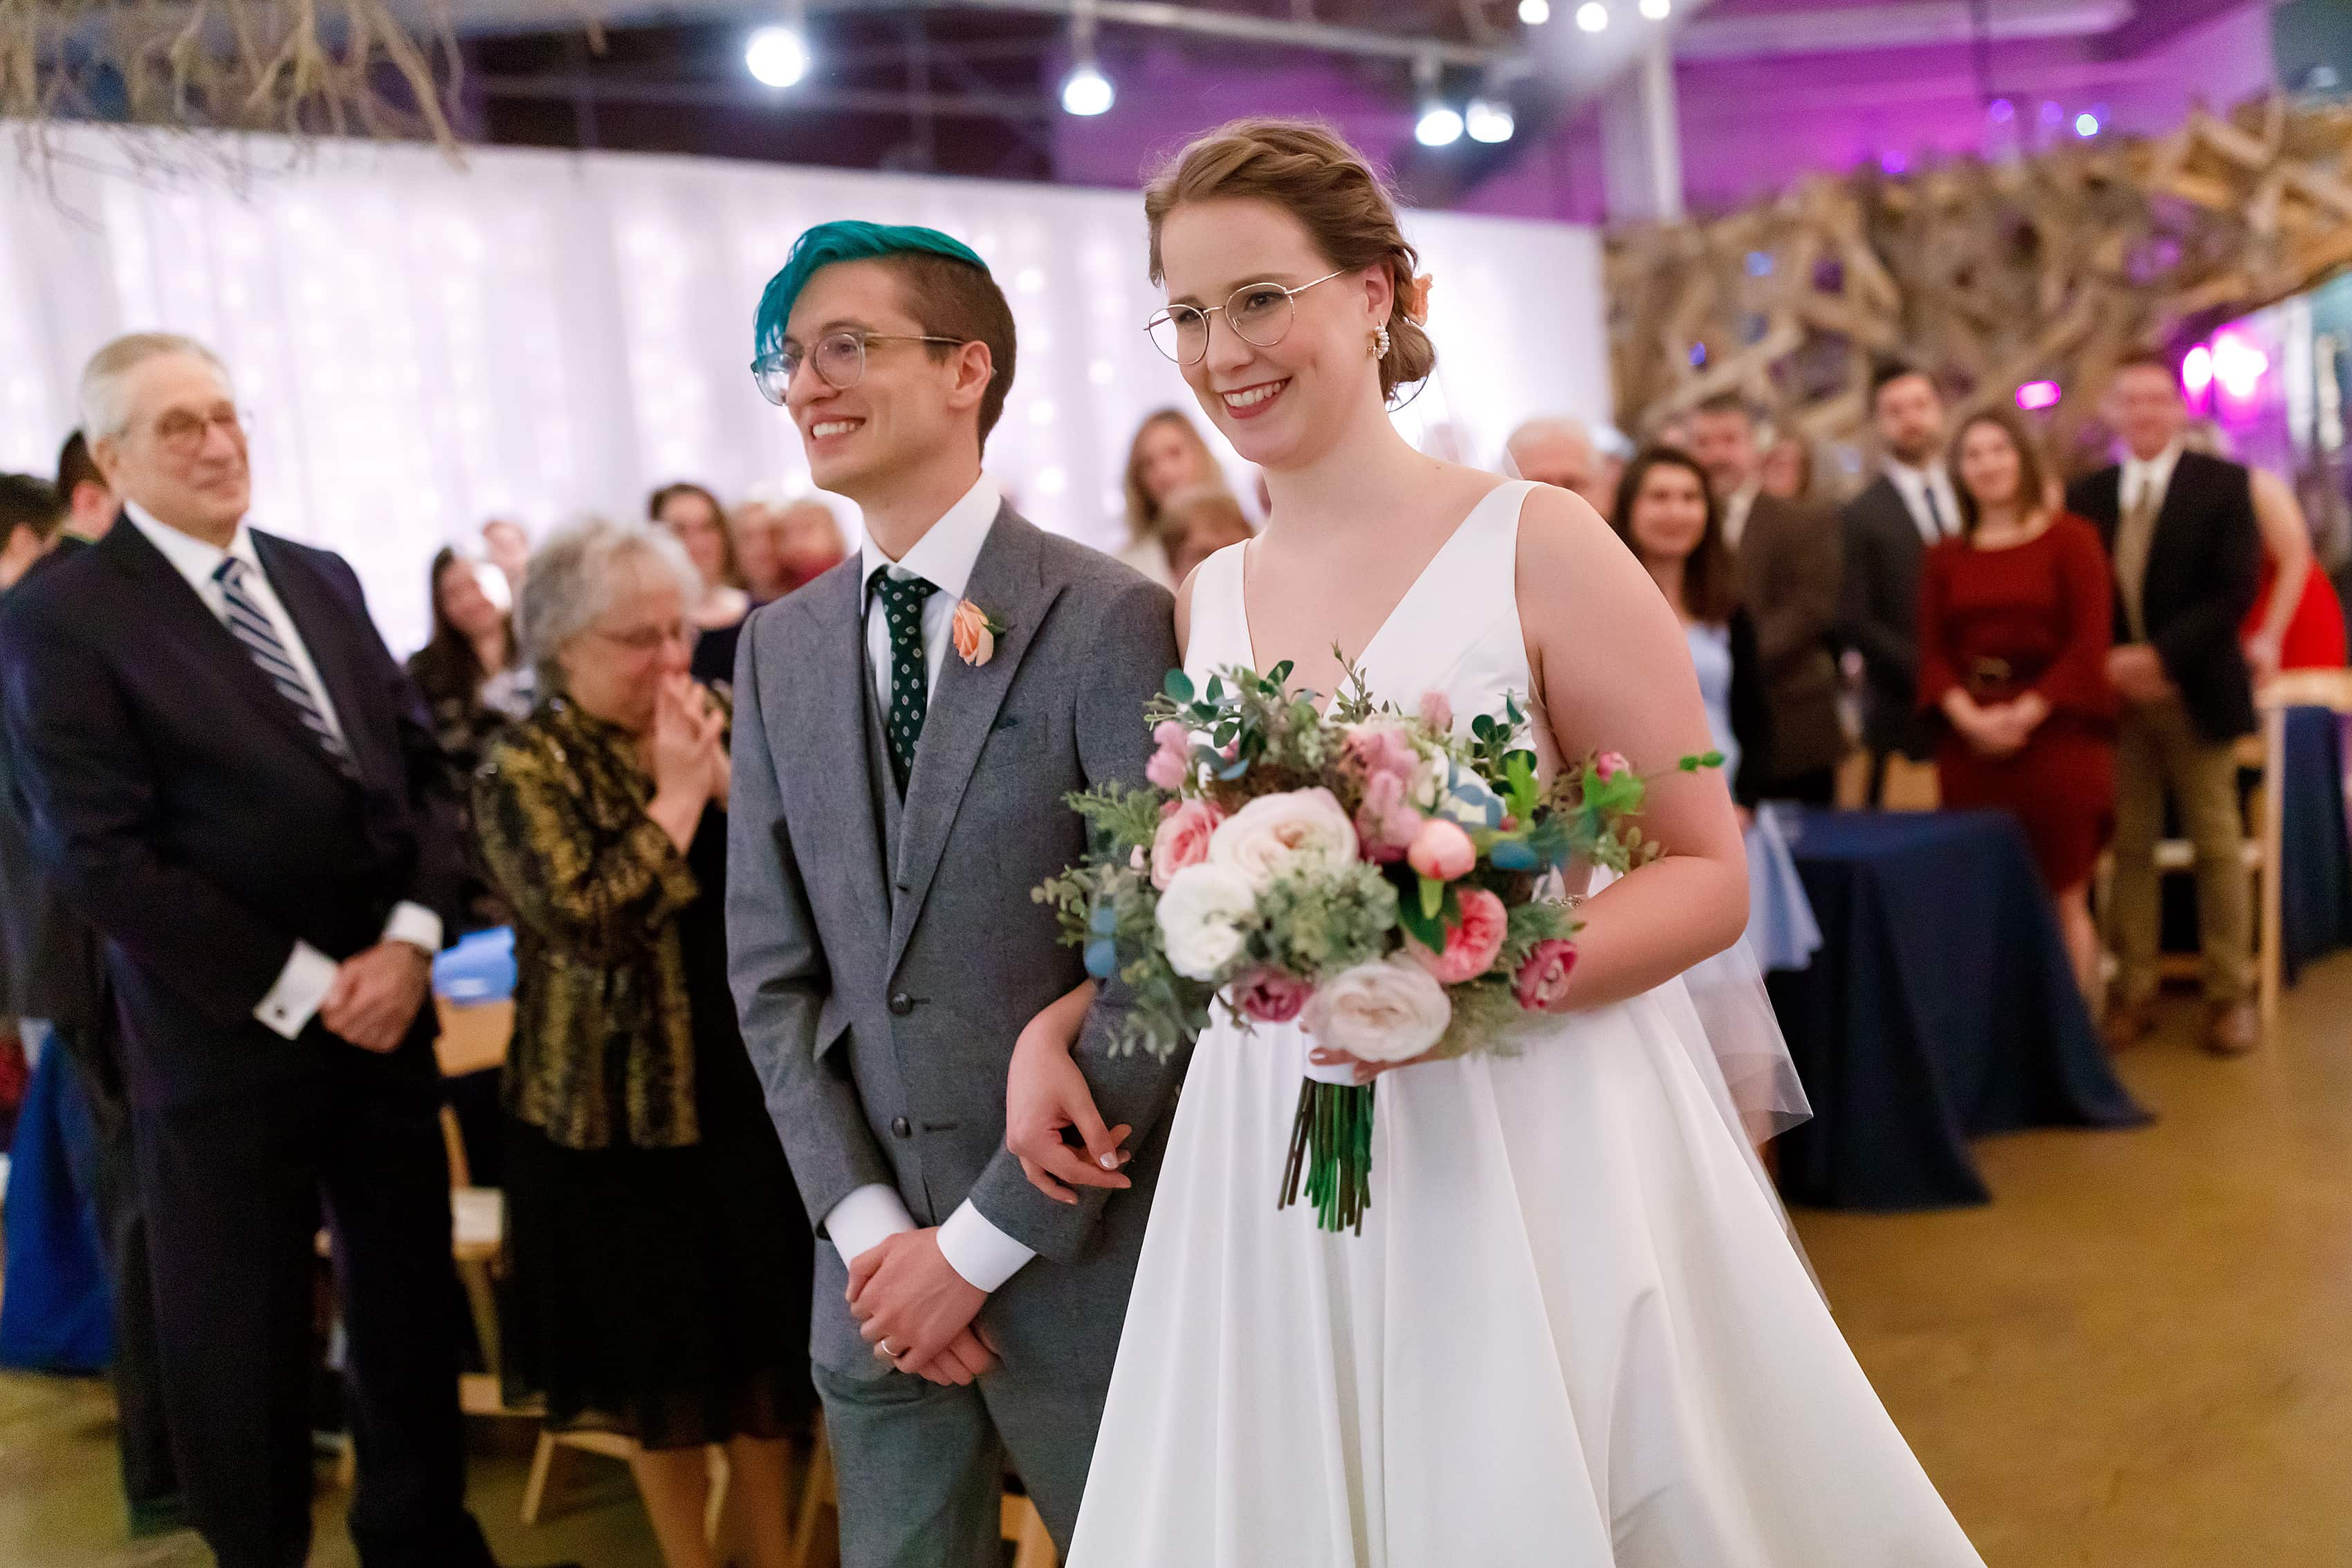 bride and groom walk down aisle during wedding ceremony at Rust Belt Market in downtown Ferndale, Michigan